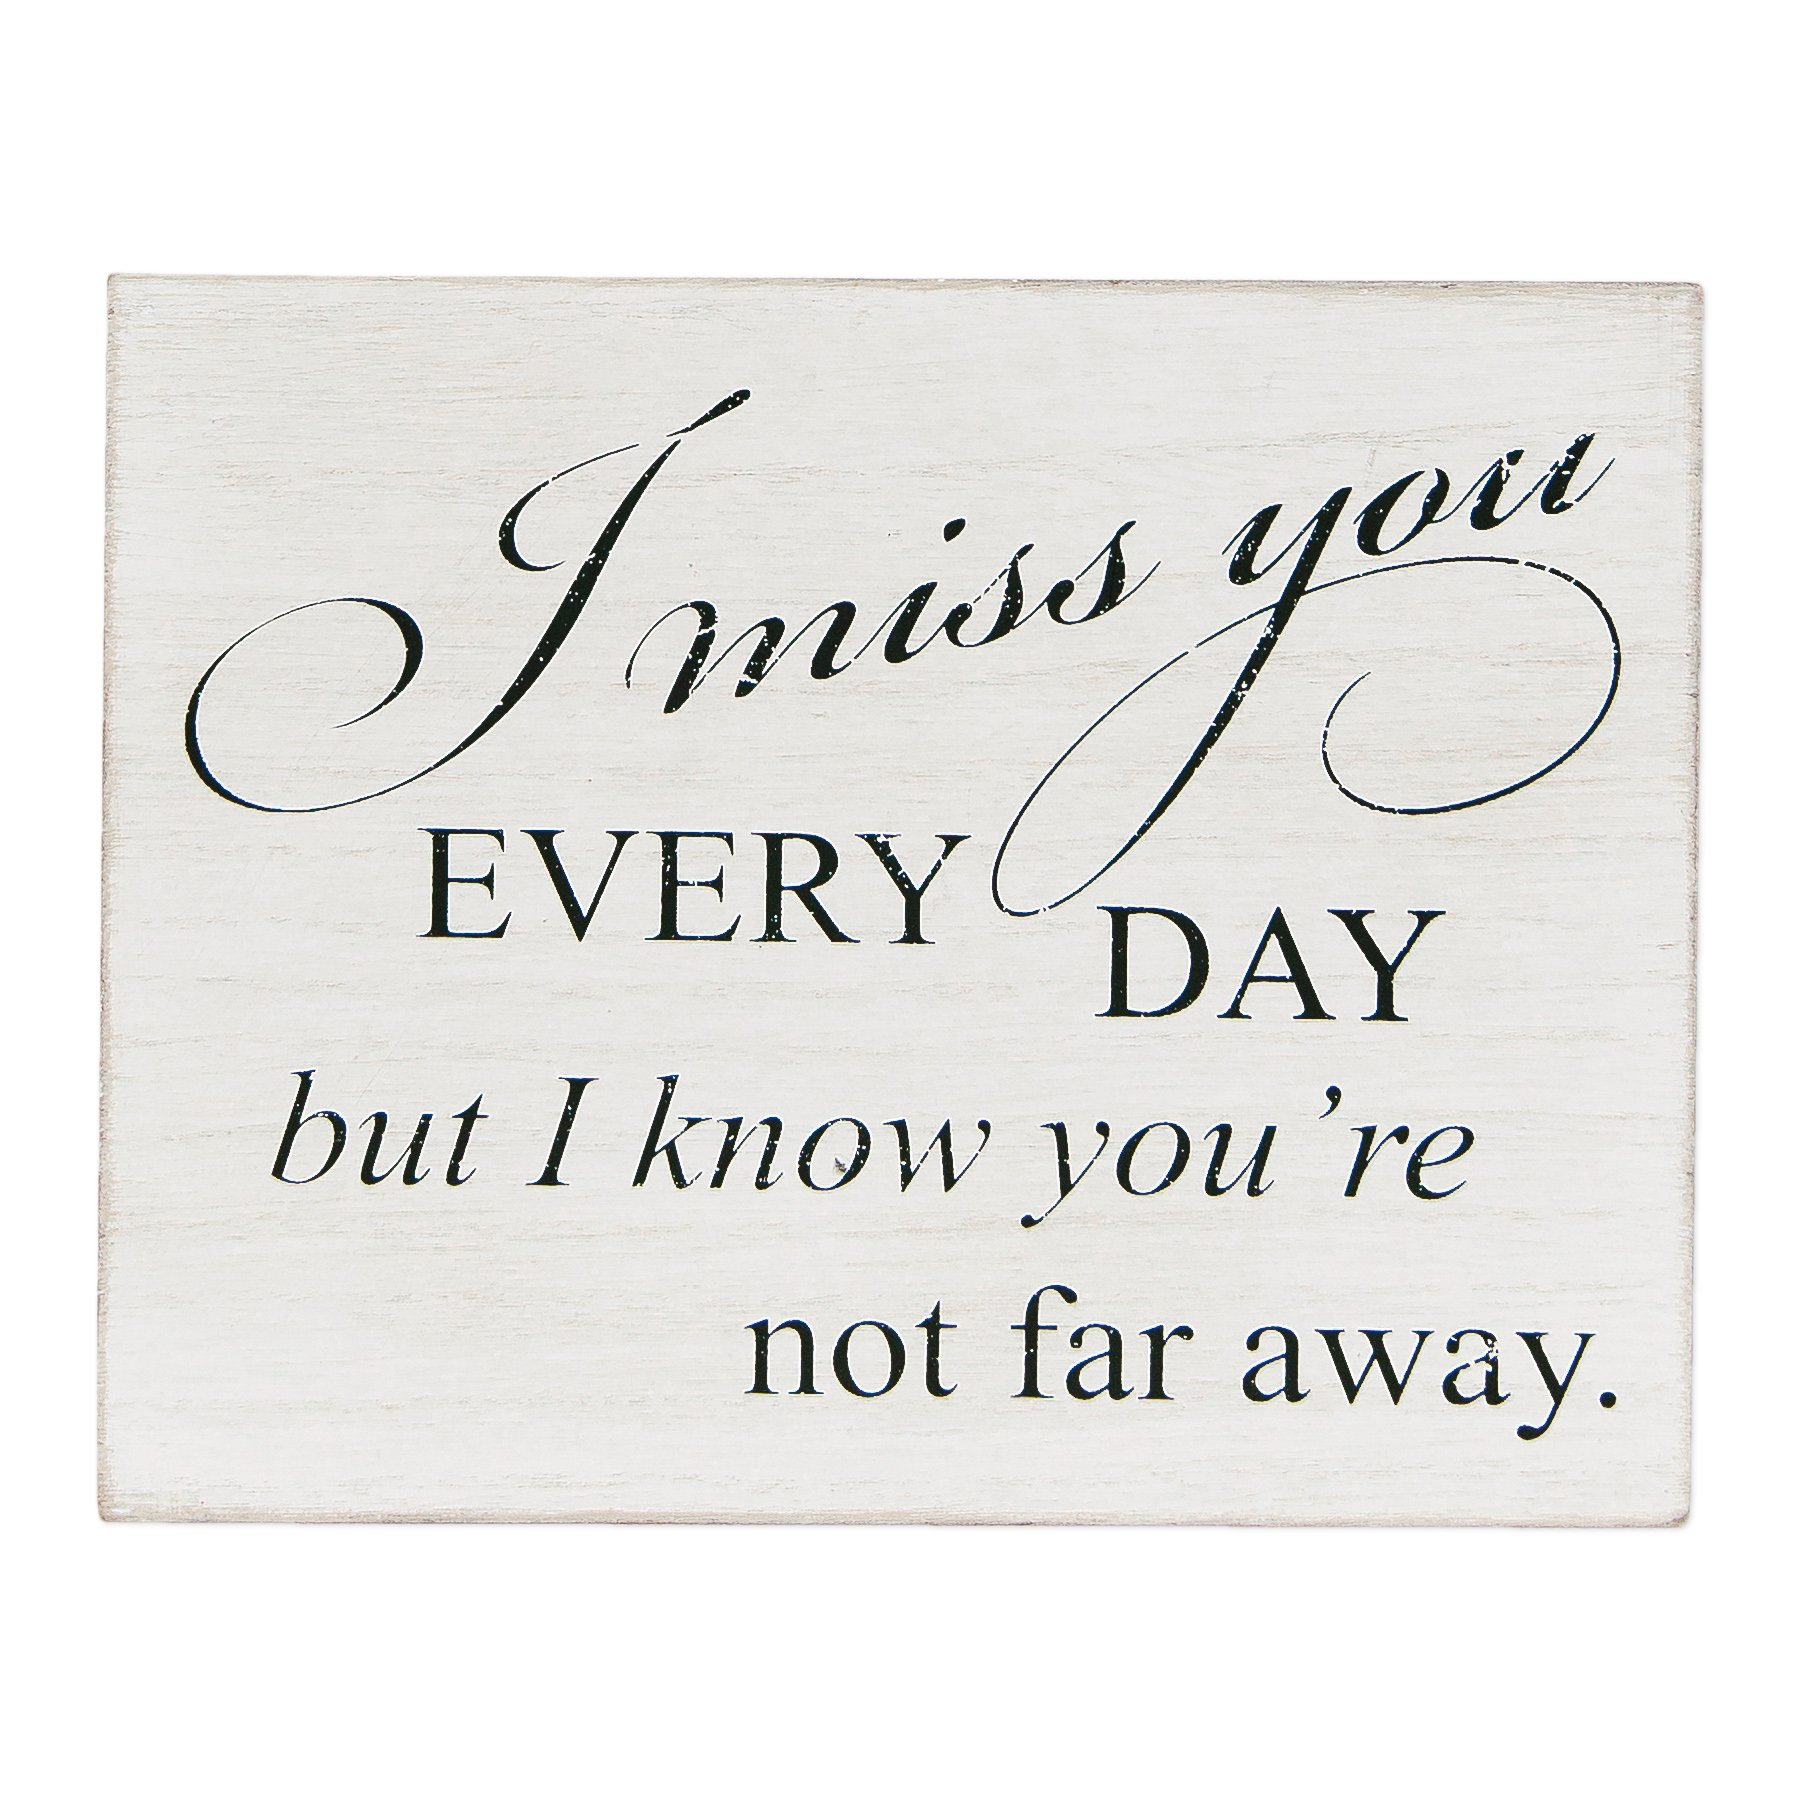 Miss You Every Day Not Far Away White 9 x 7 Inch Wood Hanging Wall Plaque Sign by Adams and Co